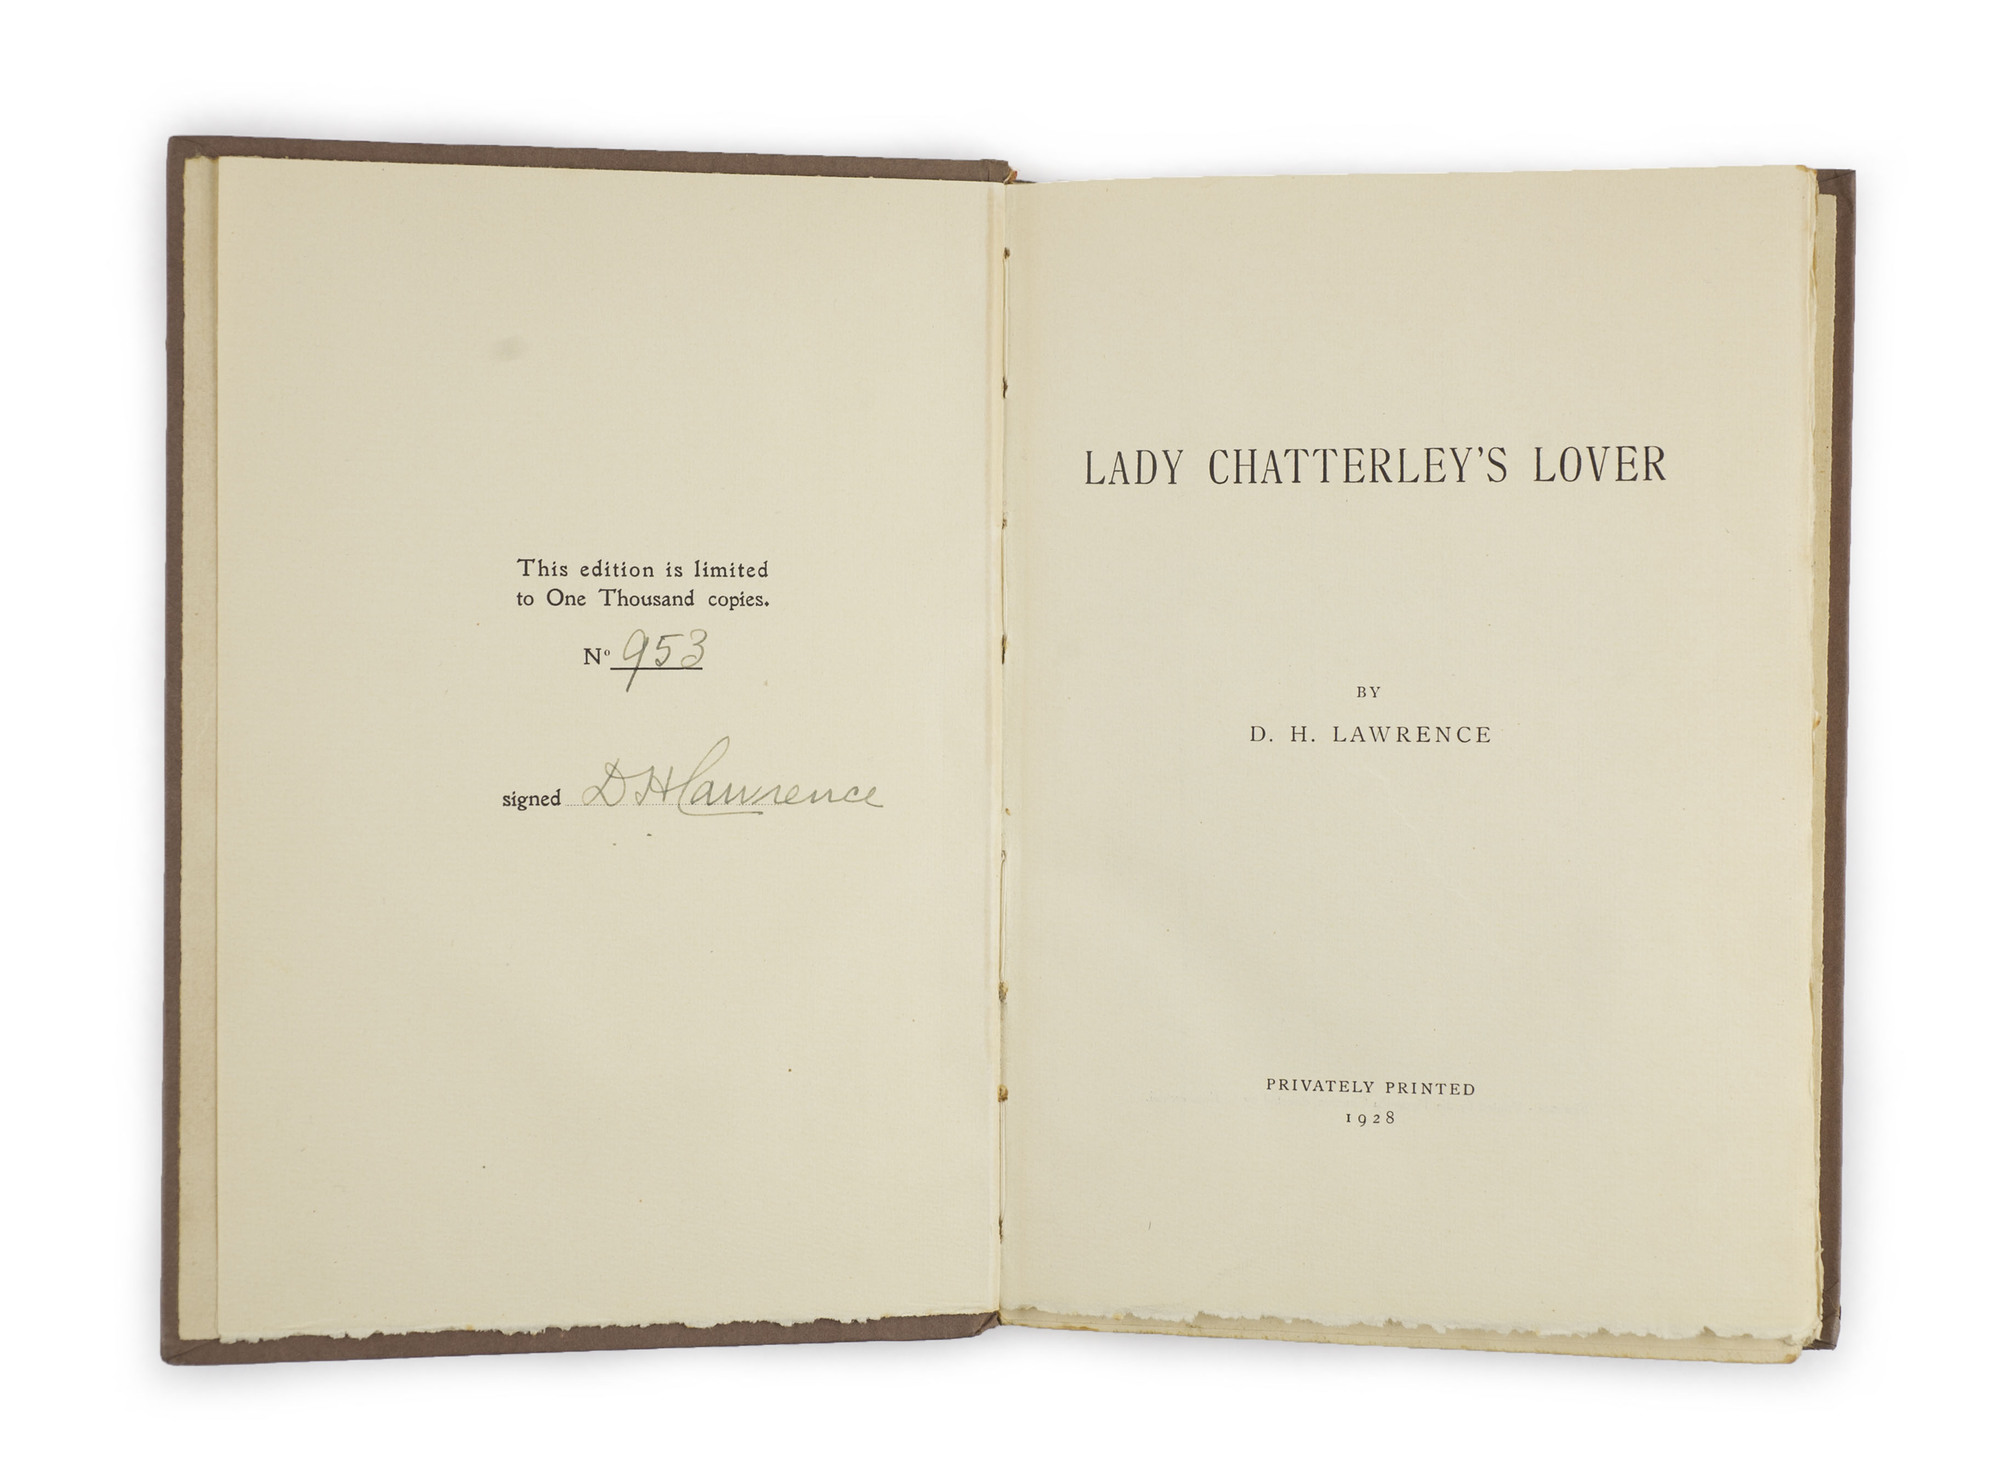 <em>Lady Chatterley's Lover</em> by D.H. Lawrence (1928)